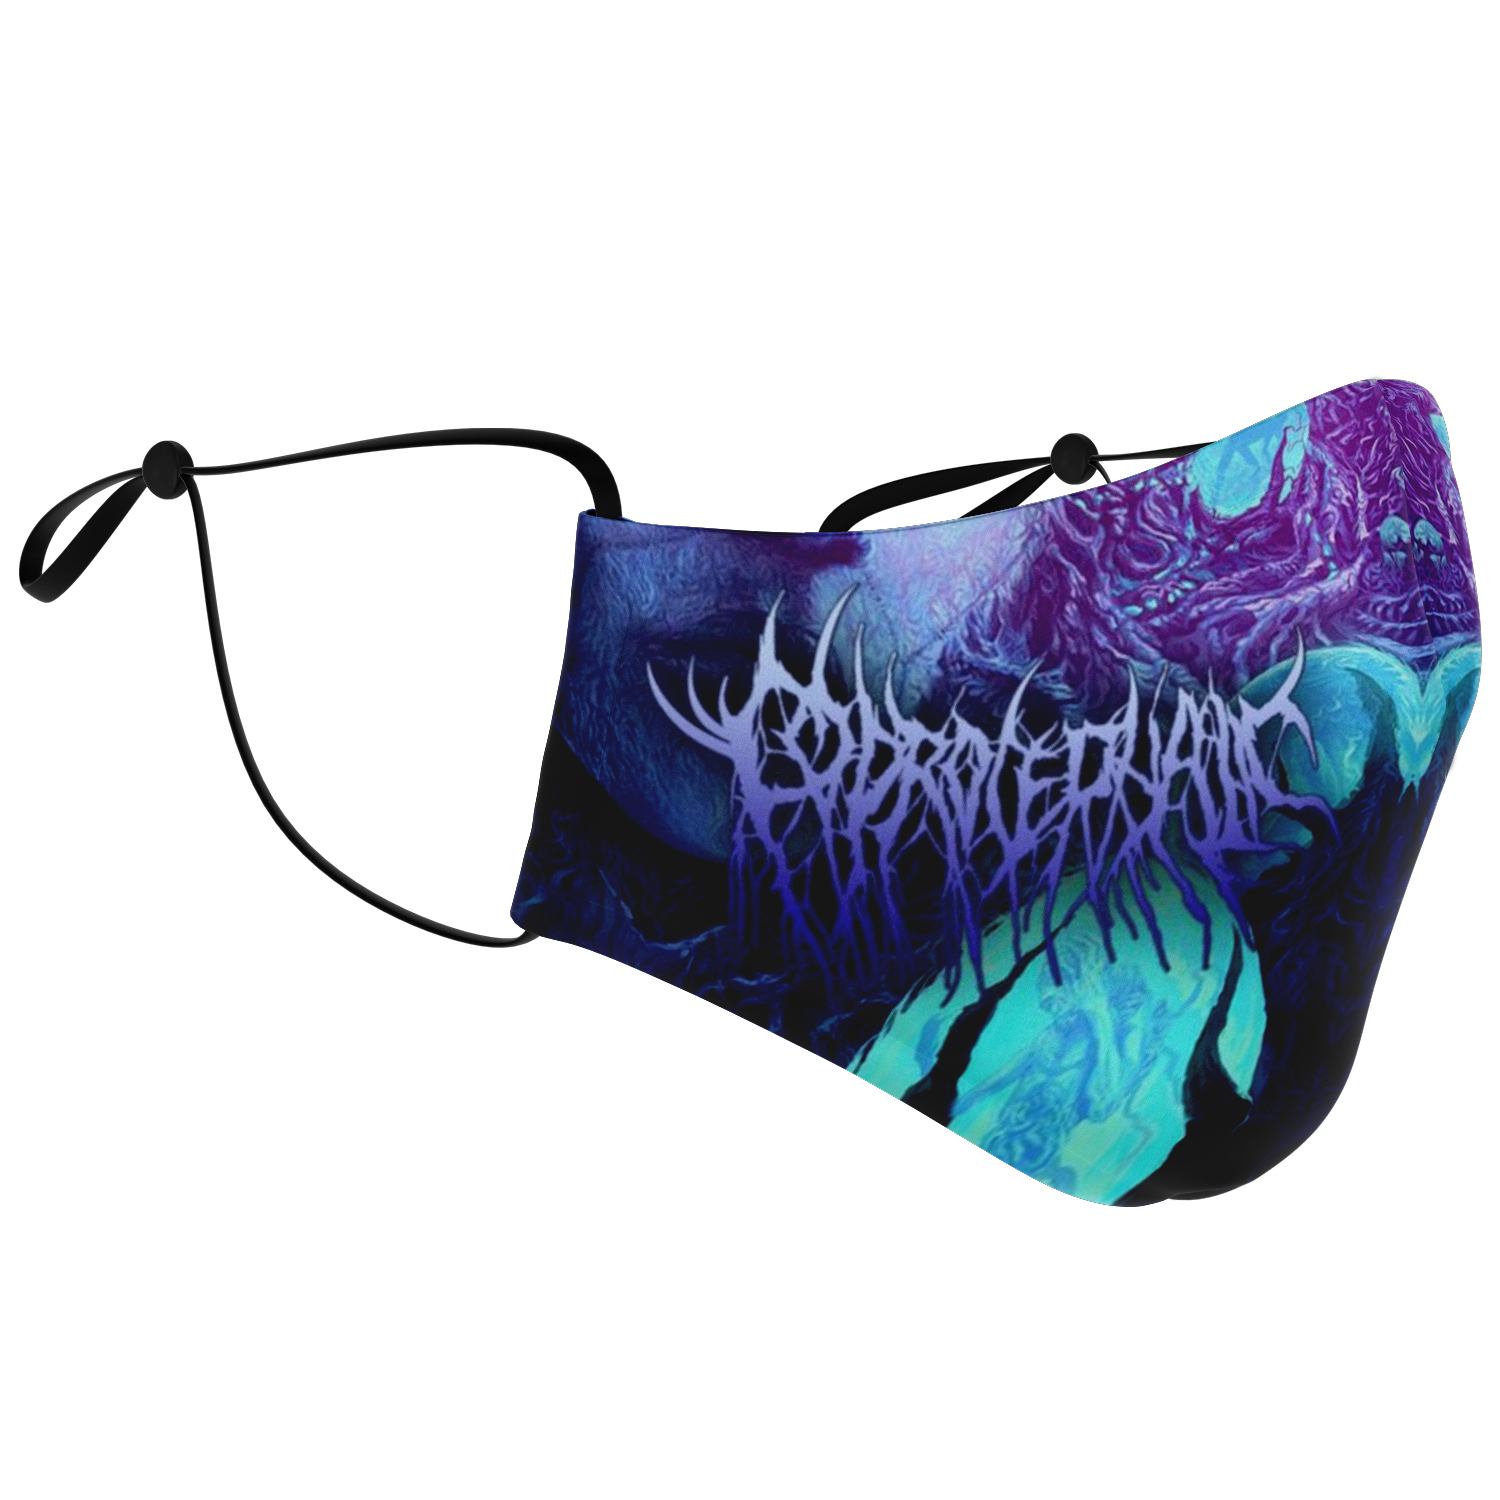 Officially Licensed Coprocephalic The Oath Of Relinquishment Mask